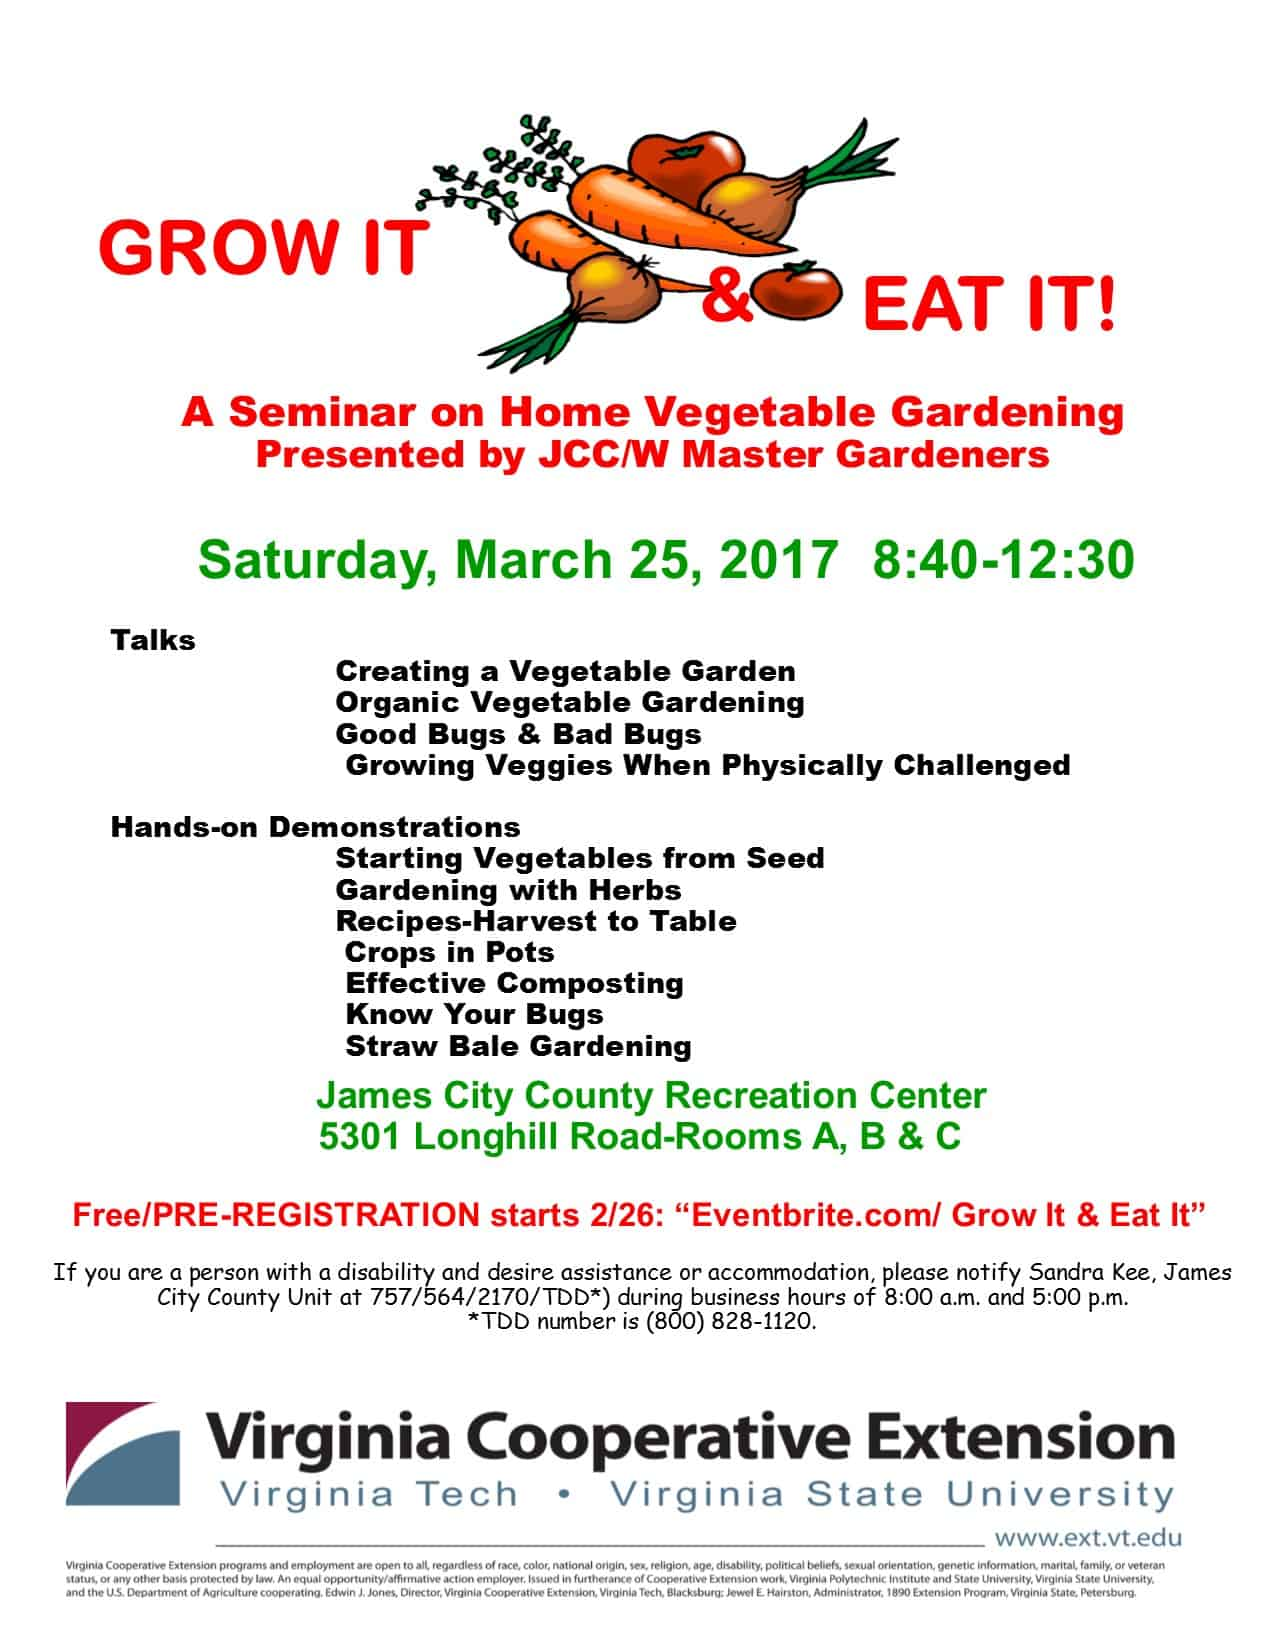 Grow and Eat flyer